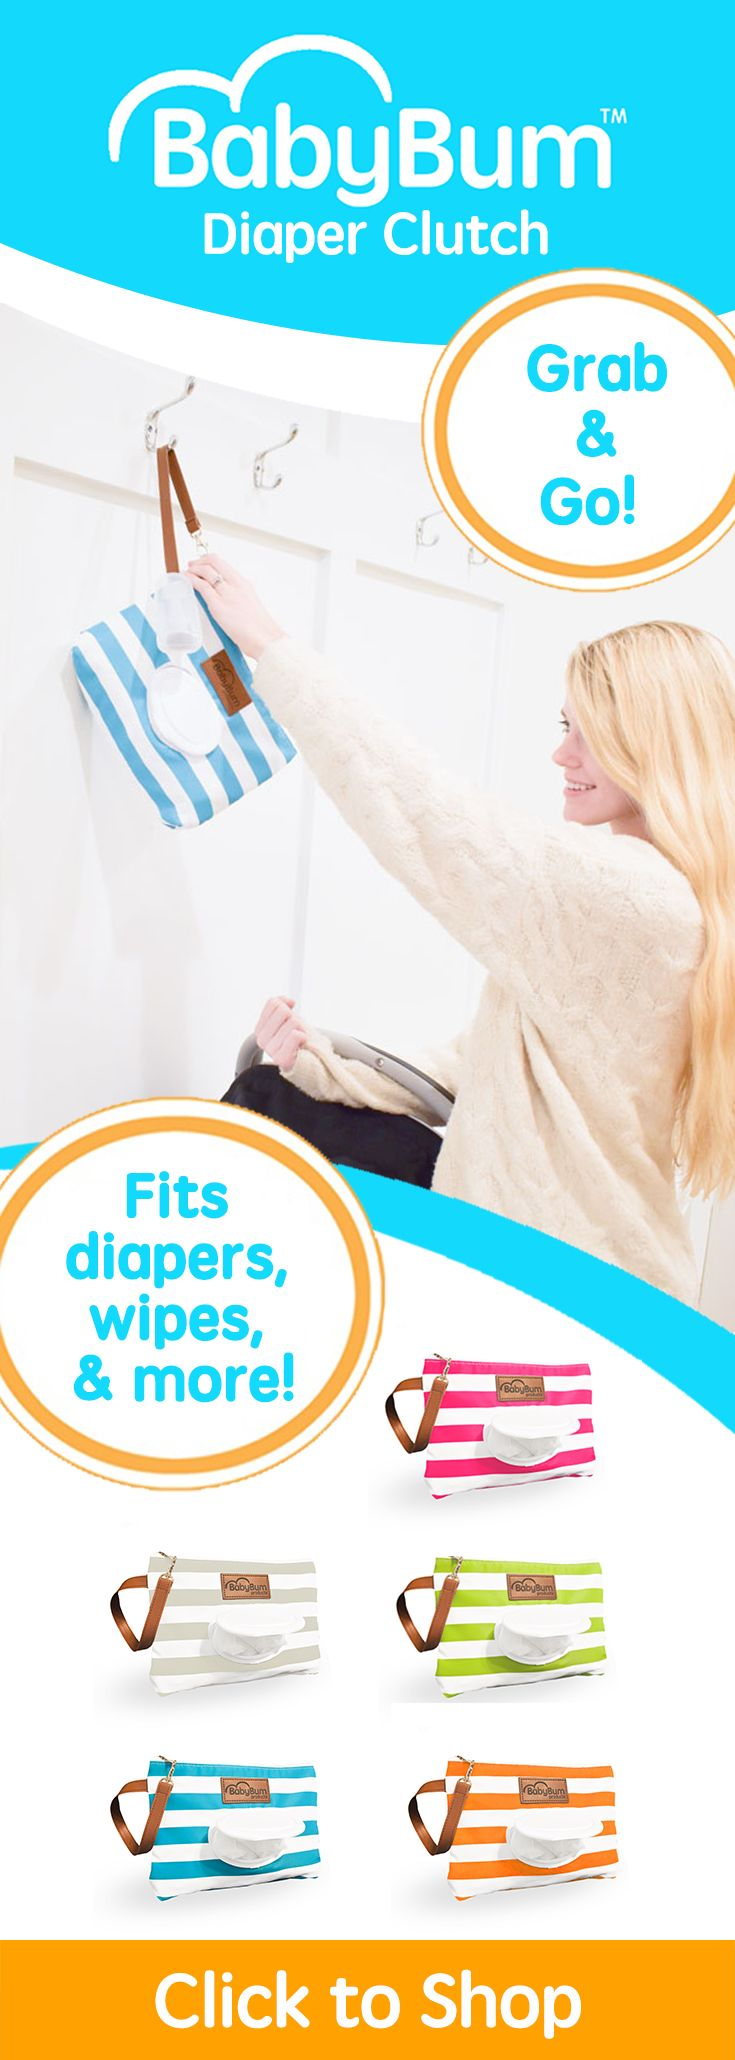 """""""This product is so much more then just a diaper clutch. We are in the process of potty training and I've been looking for something small and convient to take out and about. I perfectly fit wipes, 3 pull ups, and a change of clothes for my son in this awesome clutch! It's still small enough to not be in the way and I love that I can just clip it to his stroller and be on my way!"""" - Breanna"""